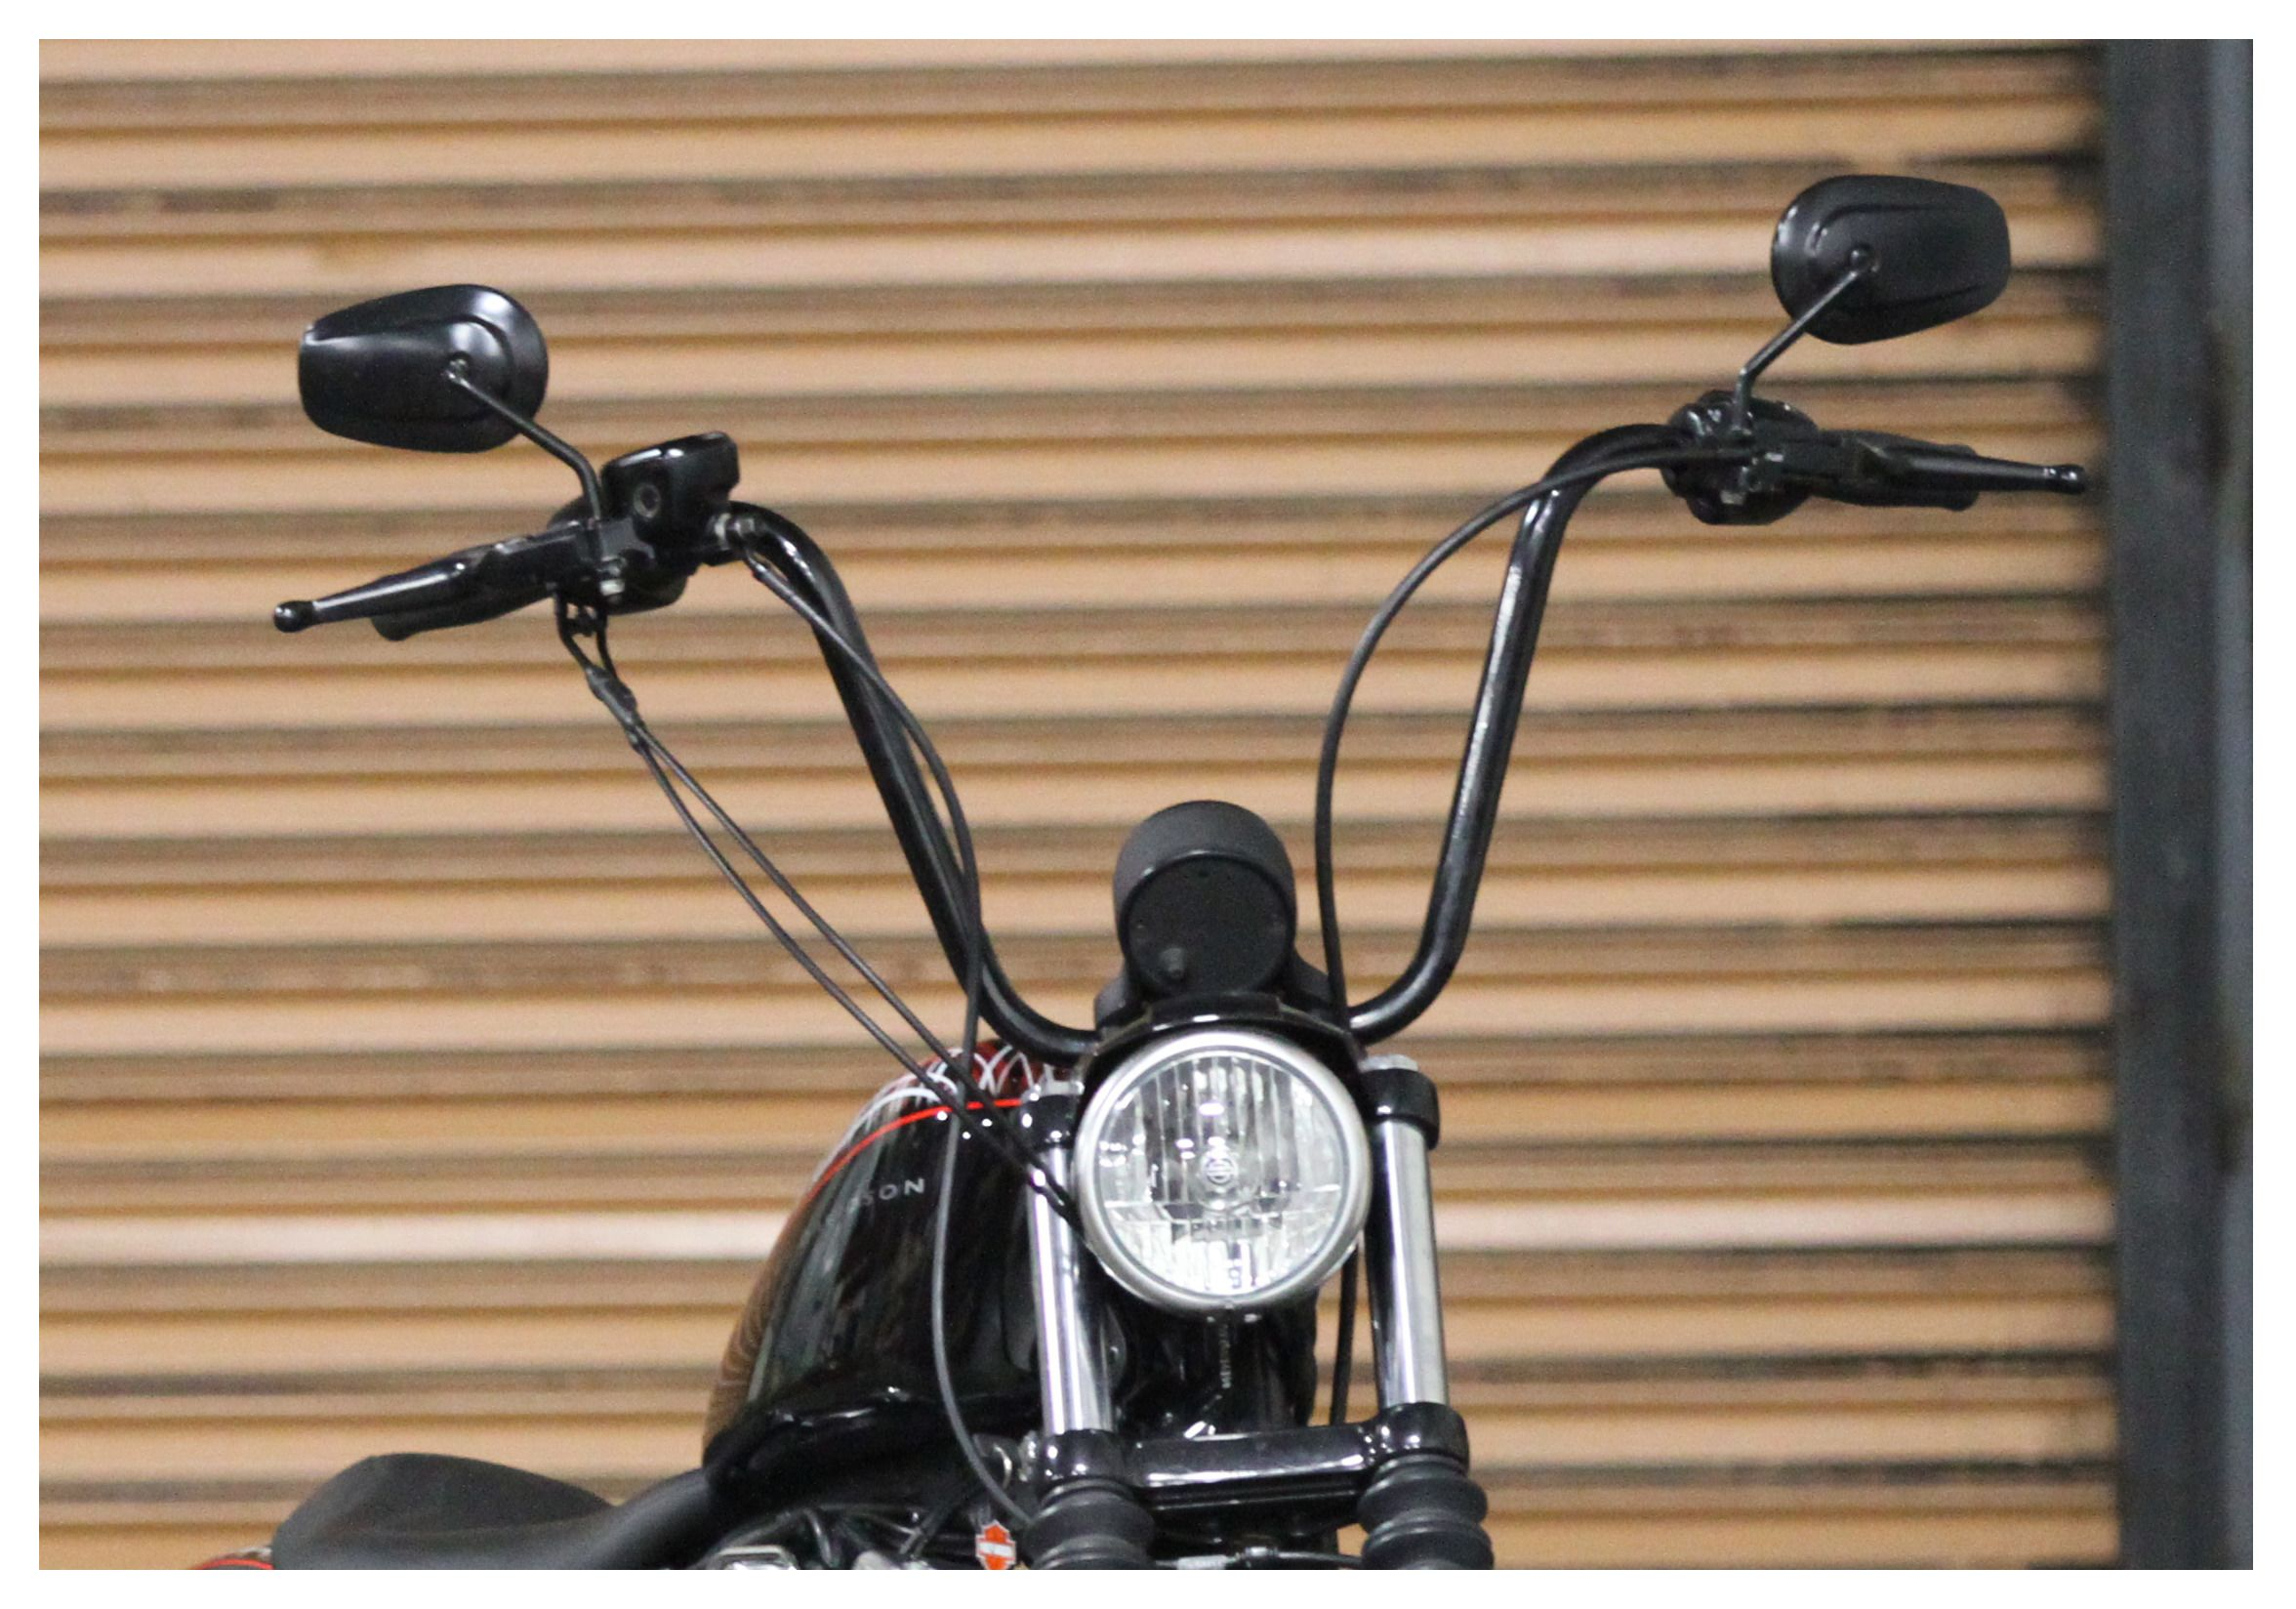 Burly Handlebar Cable Installation Kit For Harley Softail FL 2000-2006    10% ($19.99) Off! - RevZilla